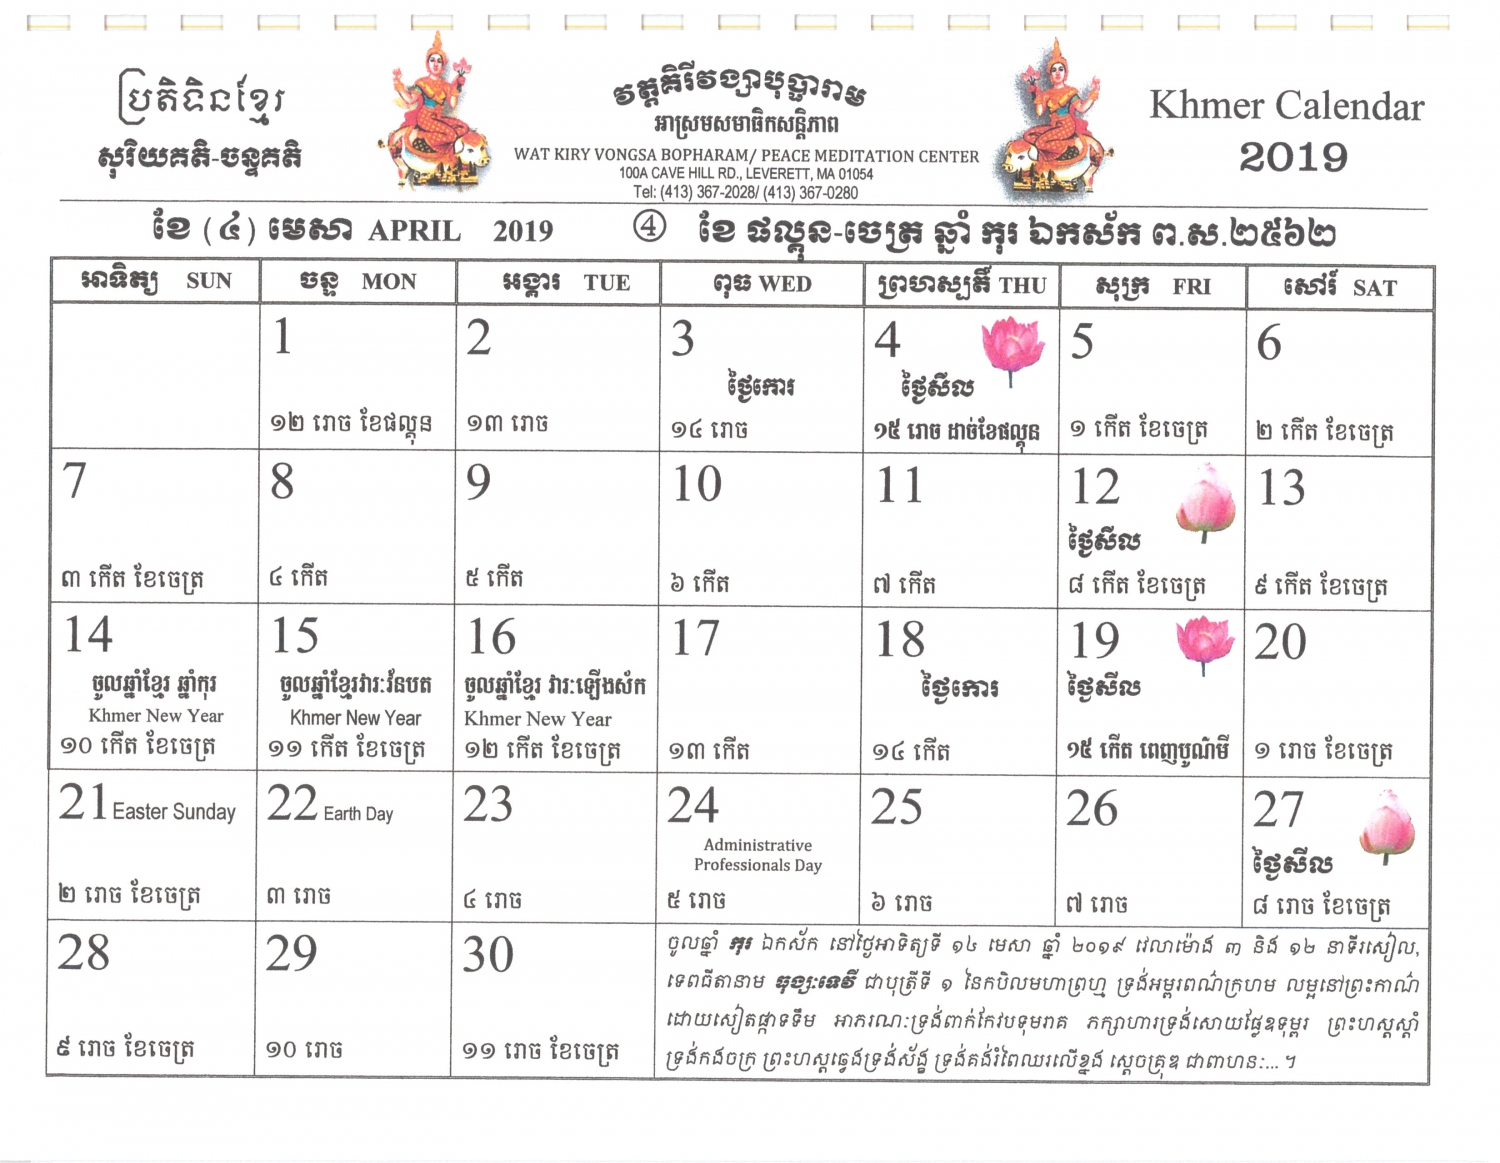 Khmer Calendar 2017 Yearly pertaining to Khmer Calendar 2020 October